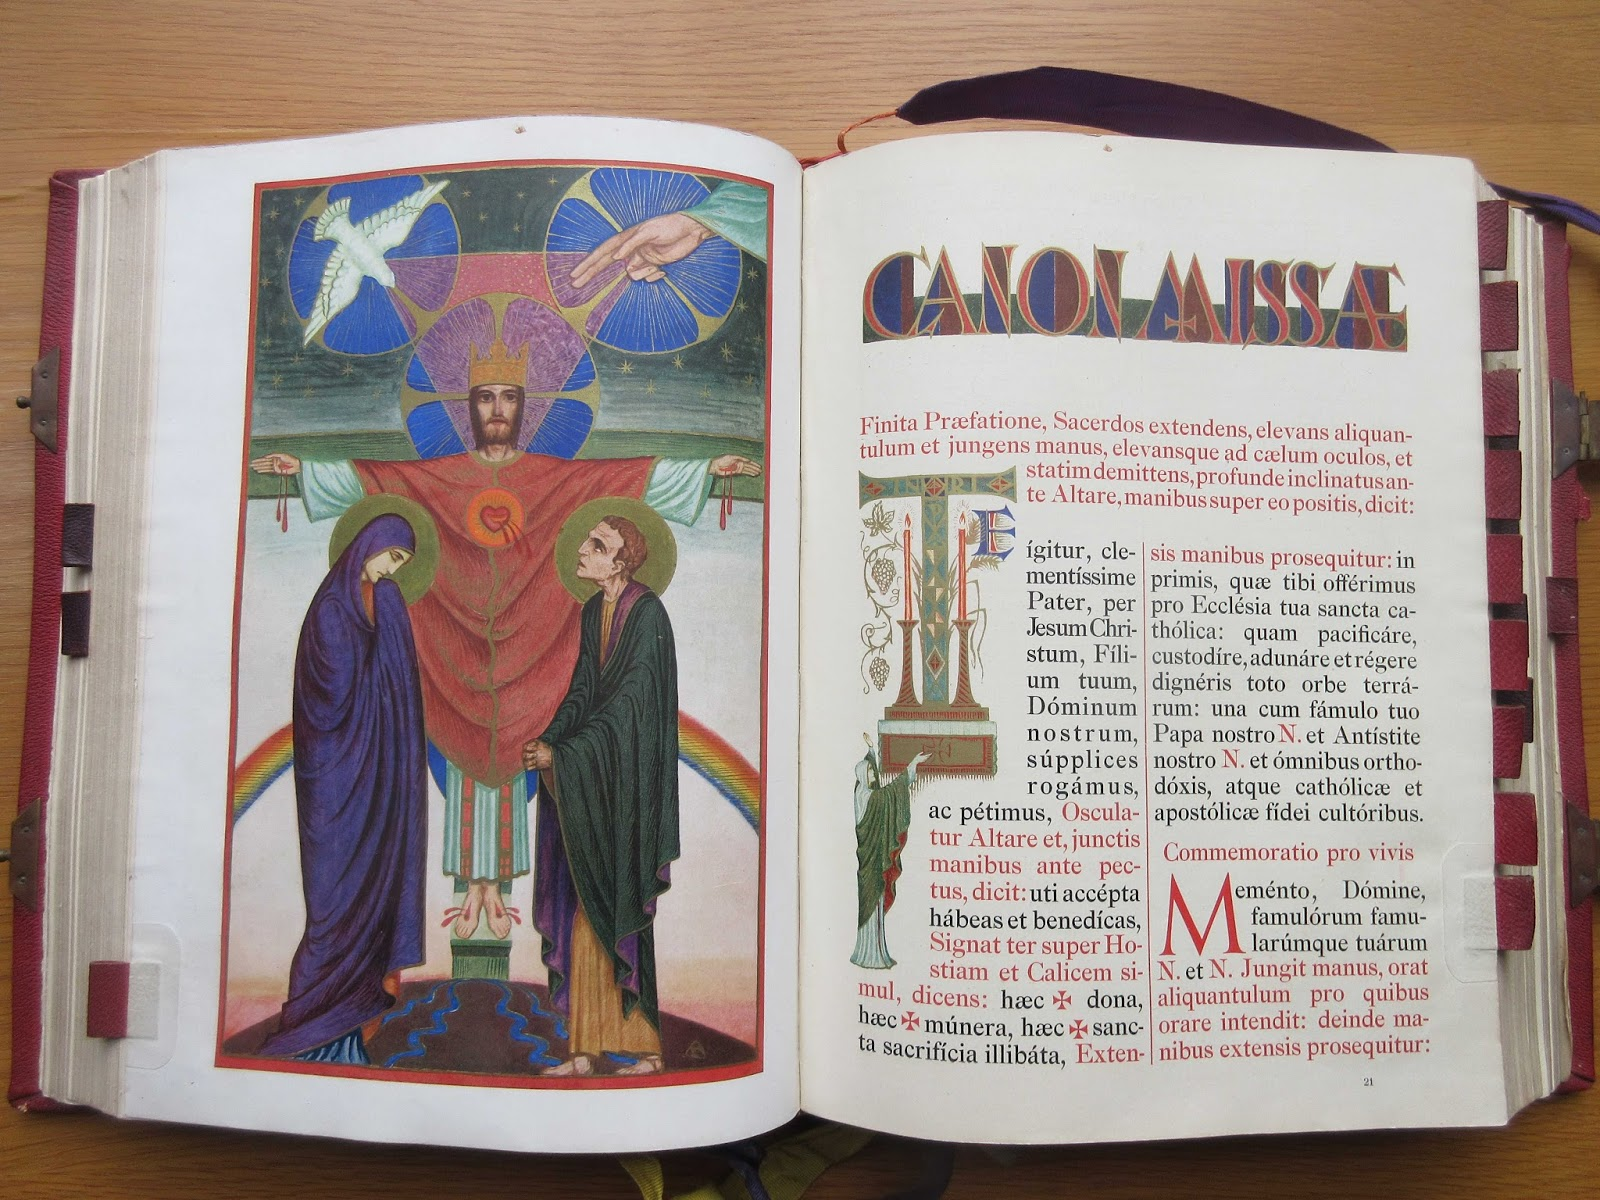 new liturgical movement missals from silverstream priory  this missal takes the prize for the largest number of thematic drawings i have ever seen in any altar missal an incredible attention to detail governs